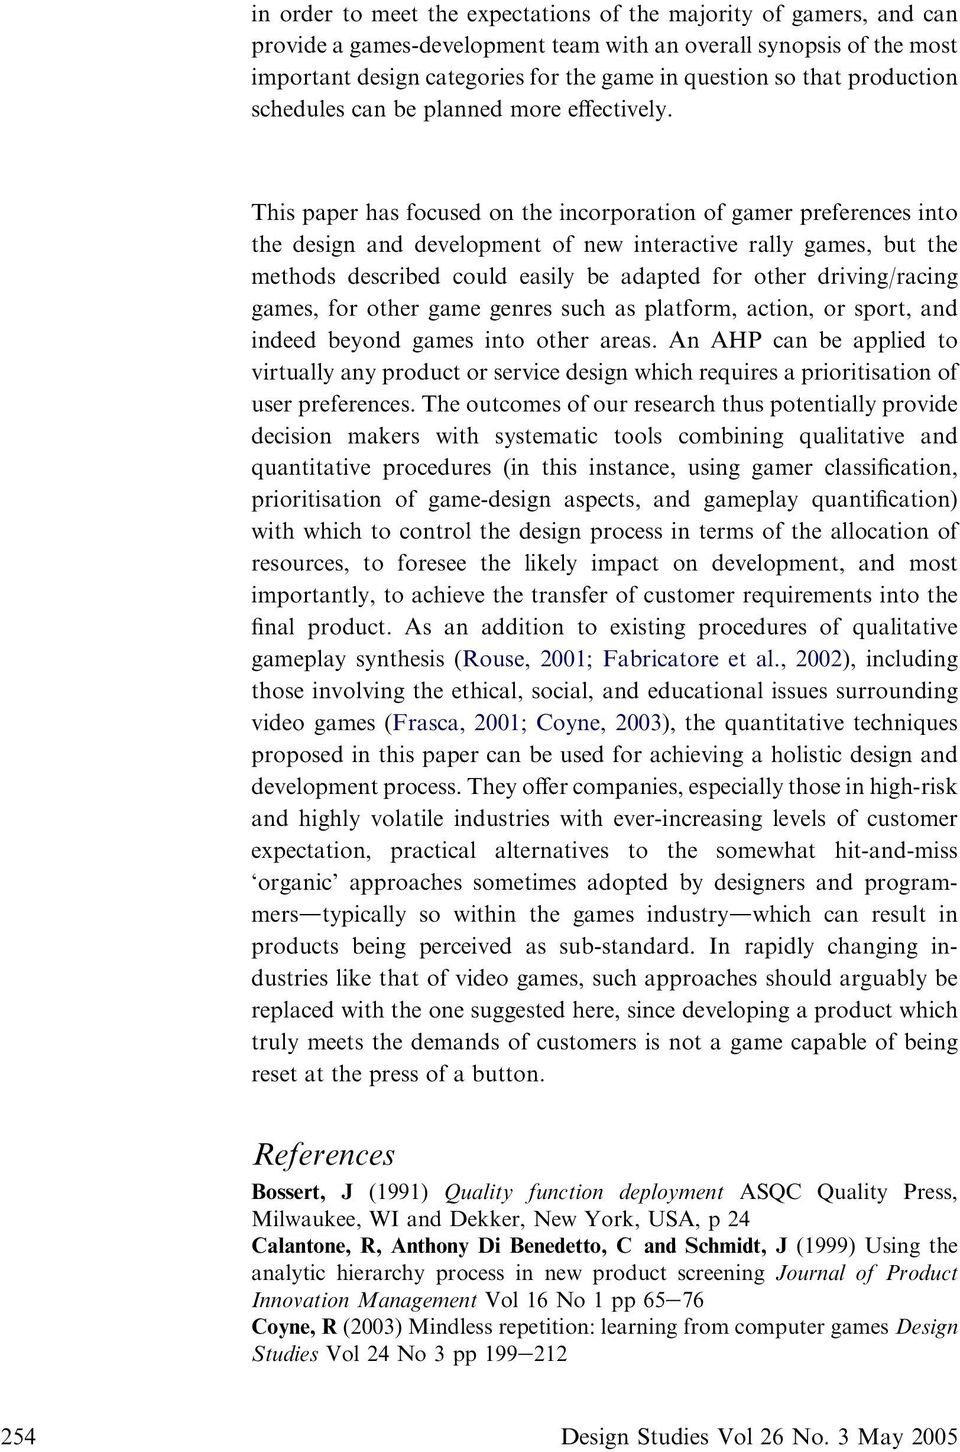 This paper has focused on the incorporation of gamer preferences into the design and development of new interactive rally games, but the methods described could easily be adapted for other